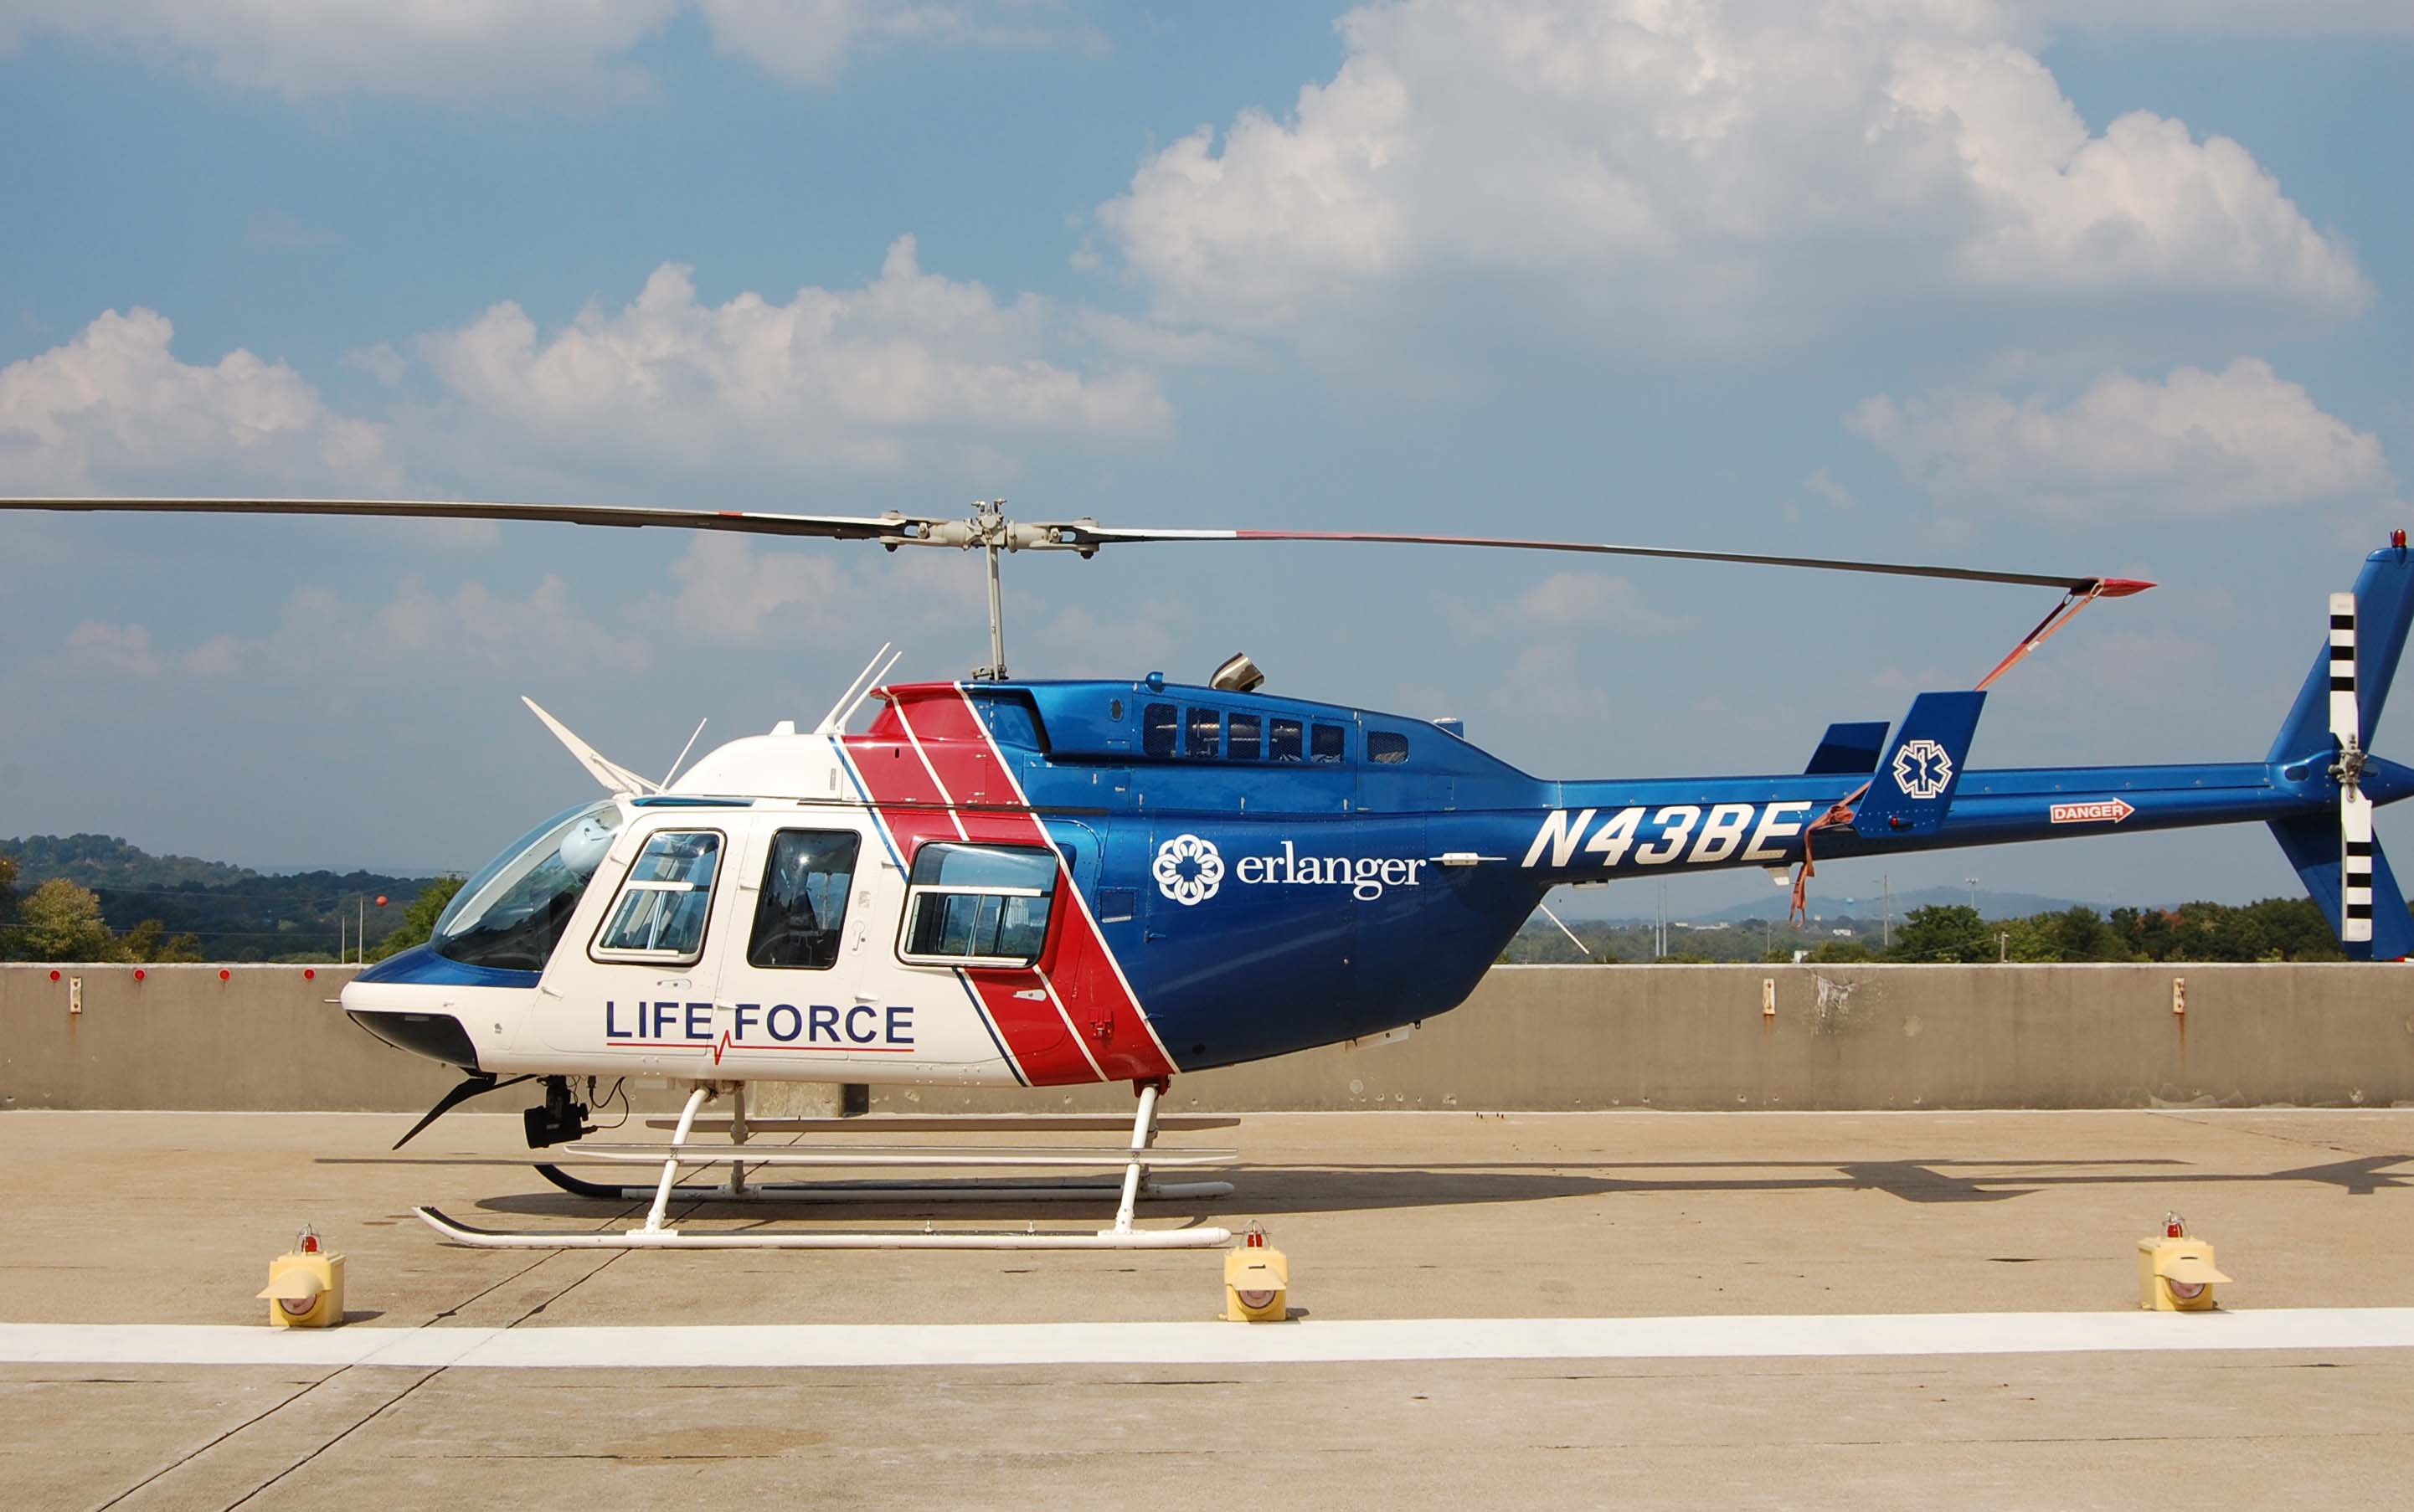 100% of LIFE FORCE flight nurses and paramedics are now board certified